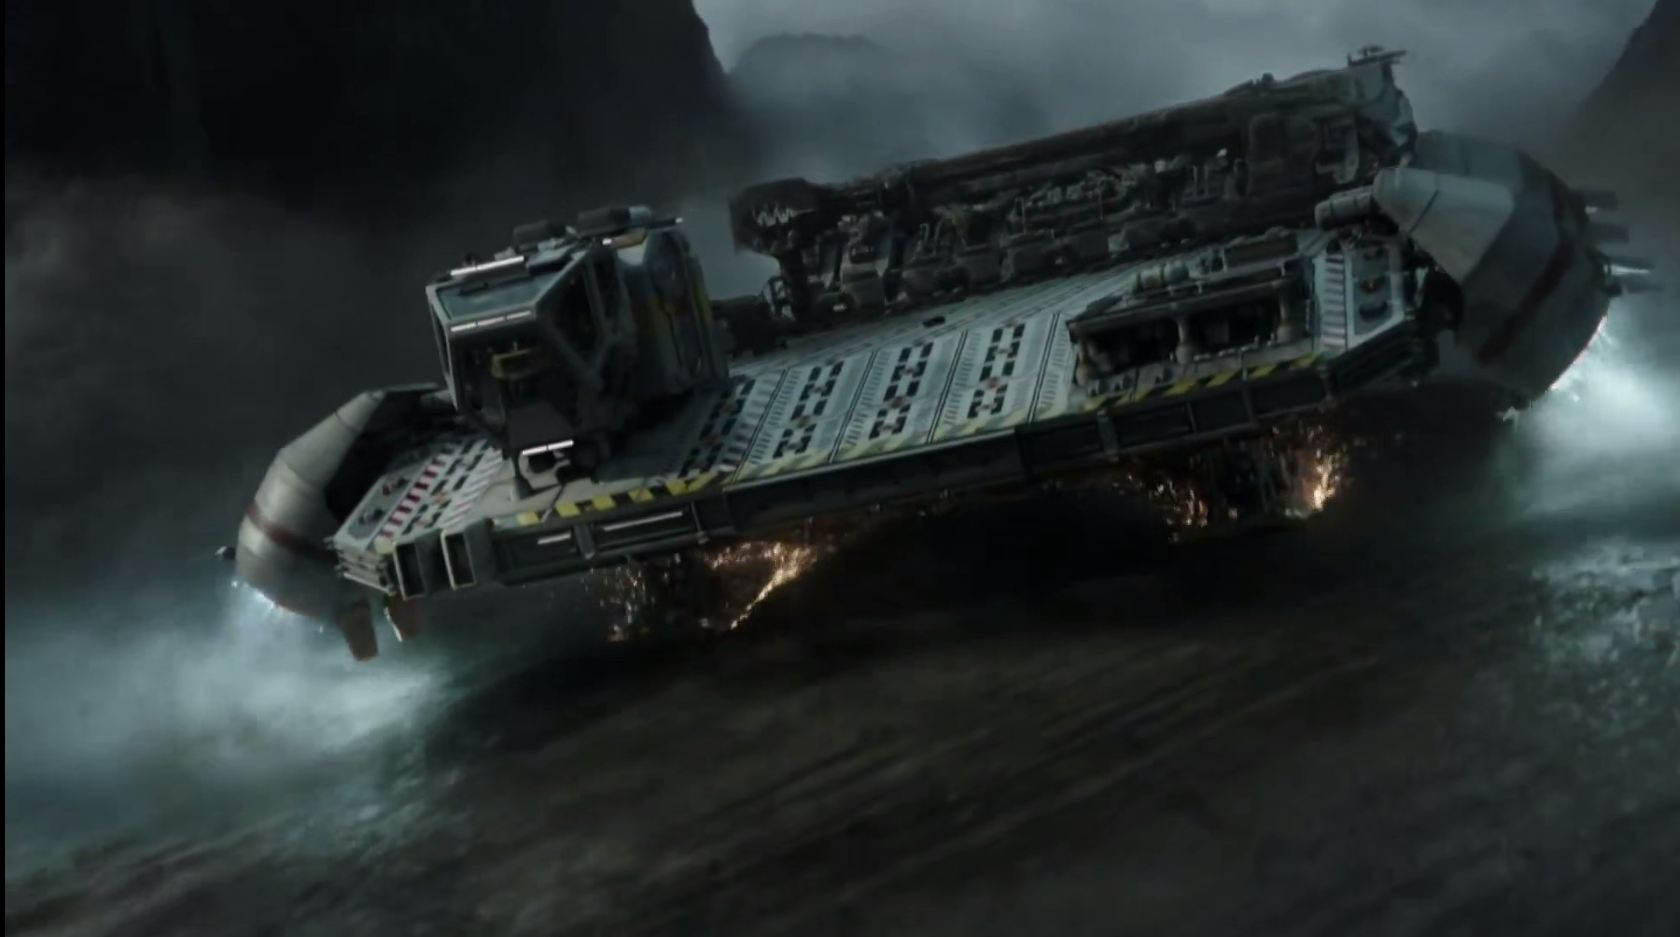 Alien Covenant Space barge spaceship